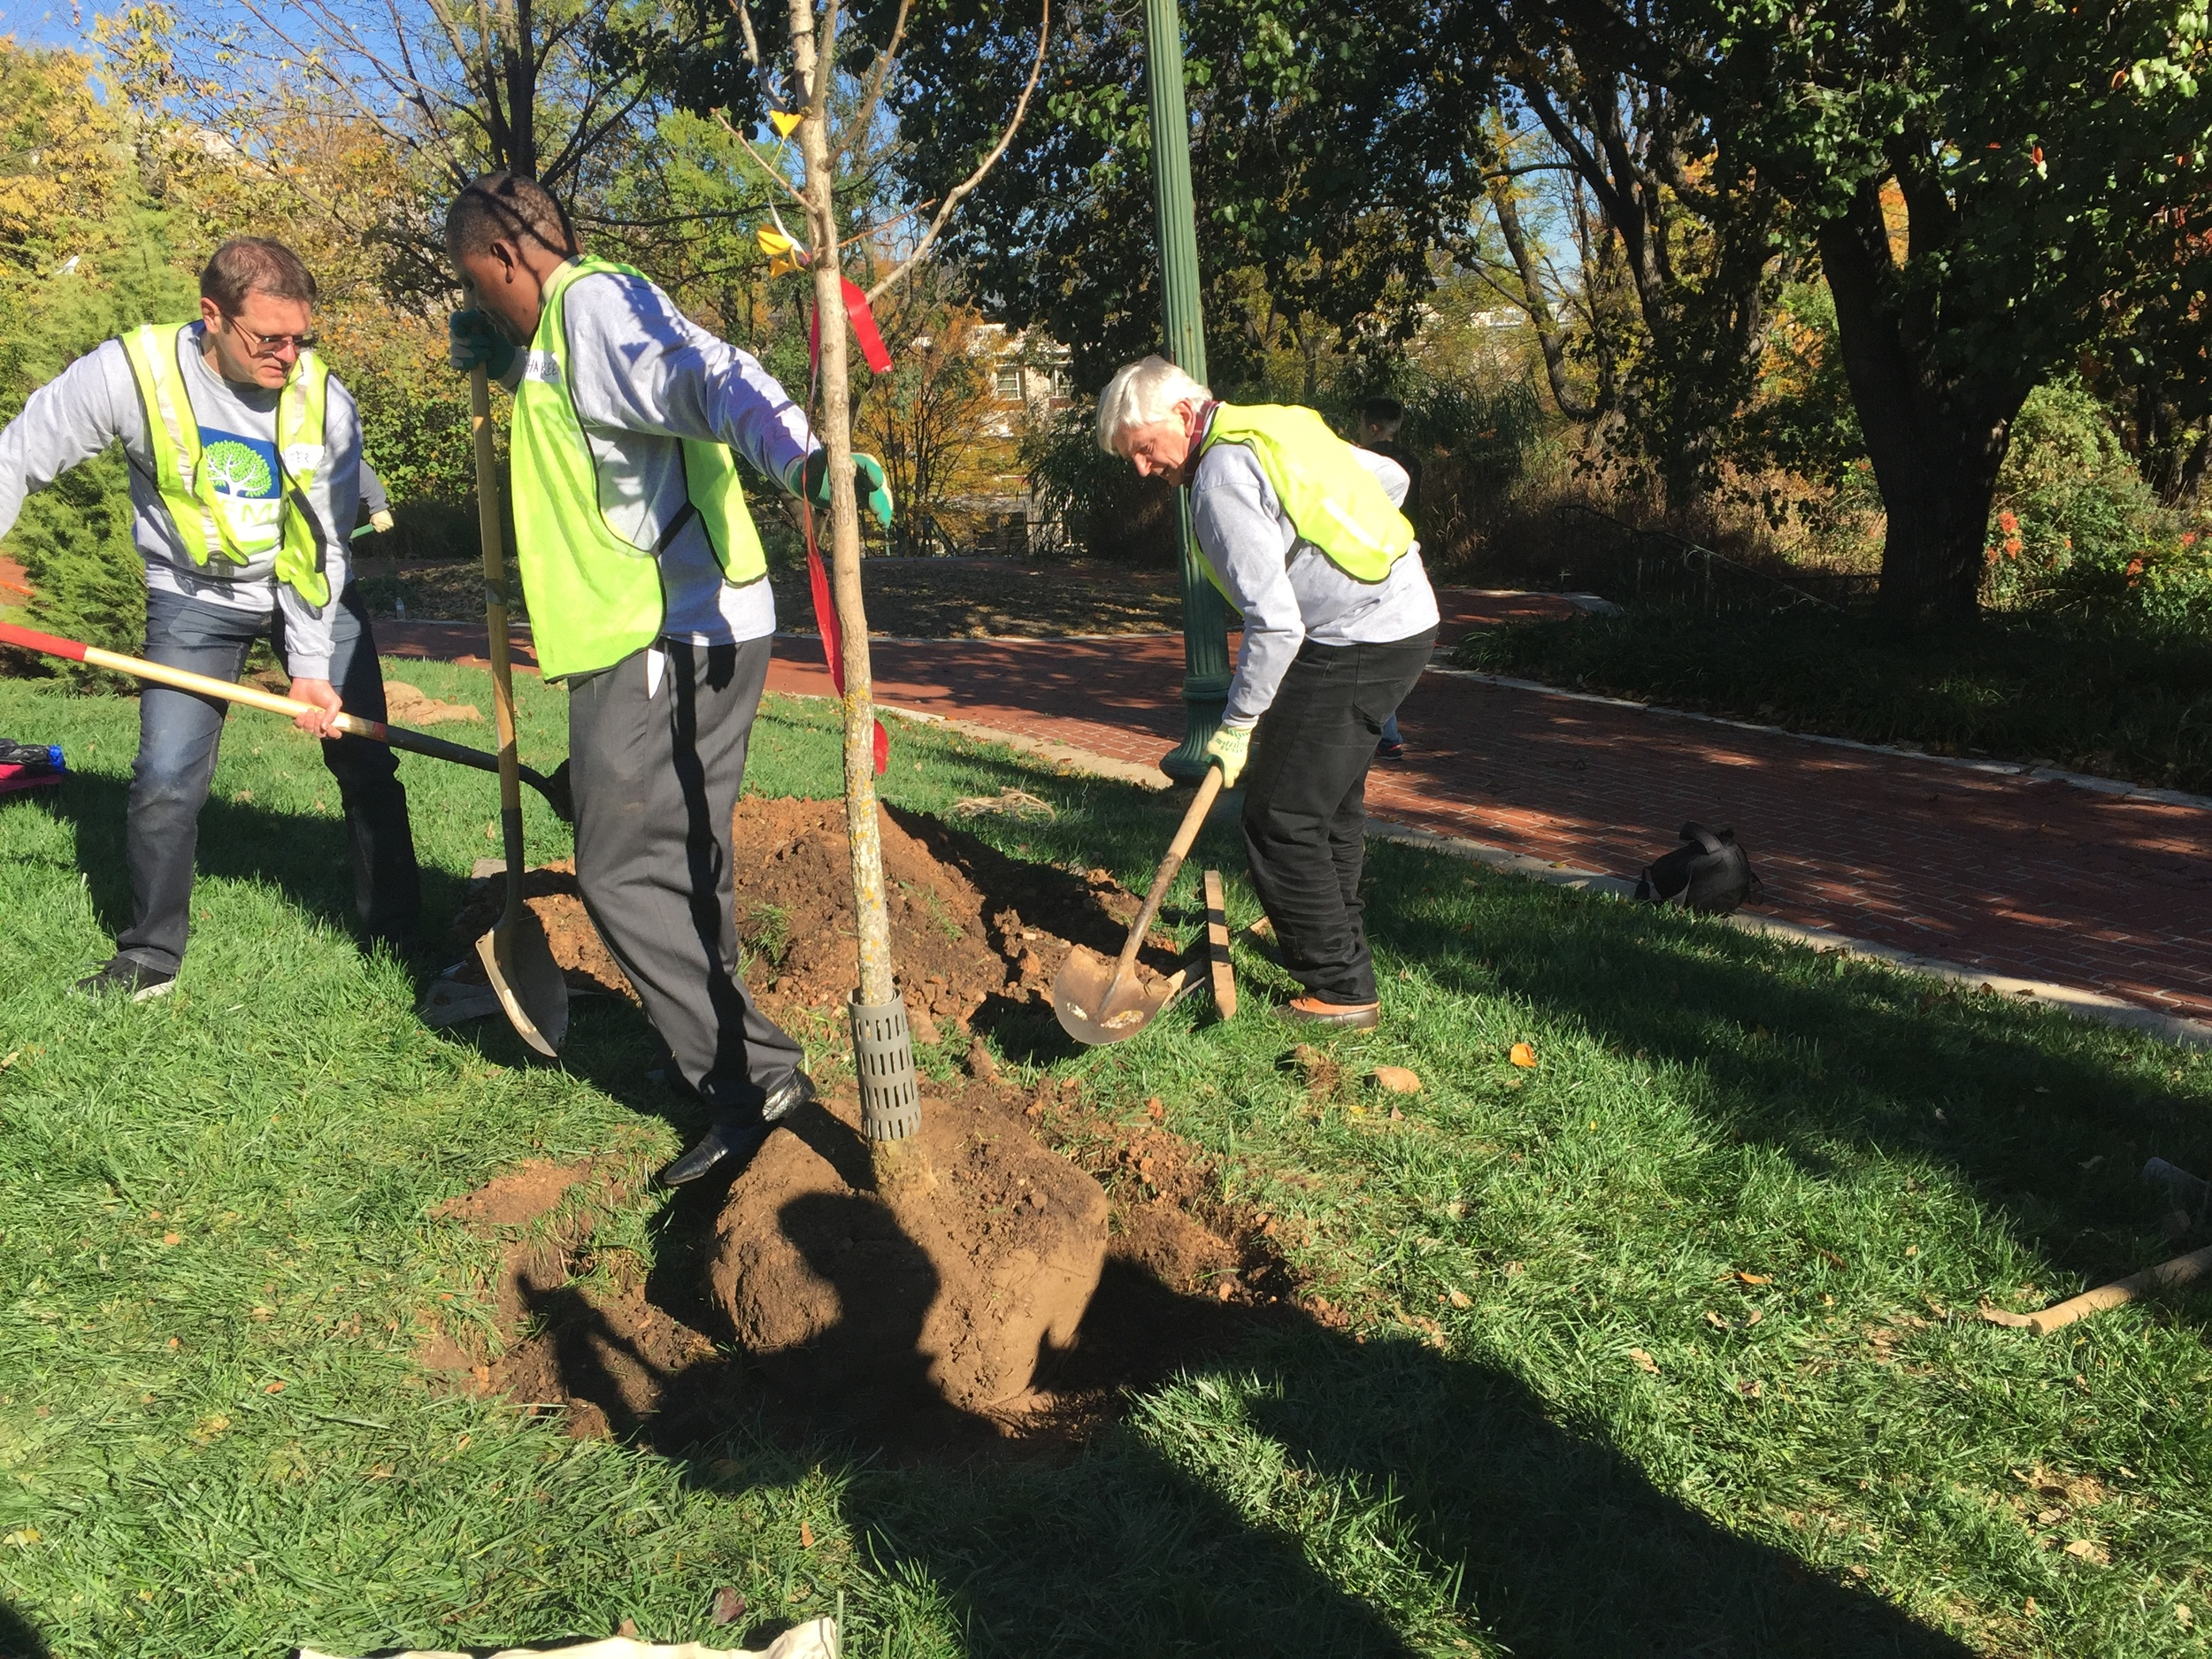 The Ambassadors of Slovakia, Nigeria and Austria (from left) plant a tree. Photo: Julian Steiner